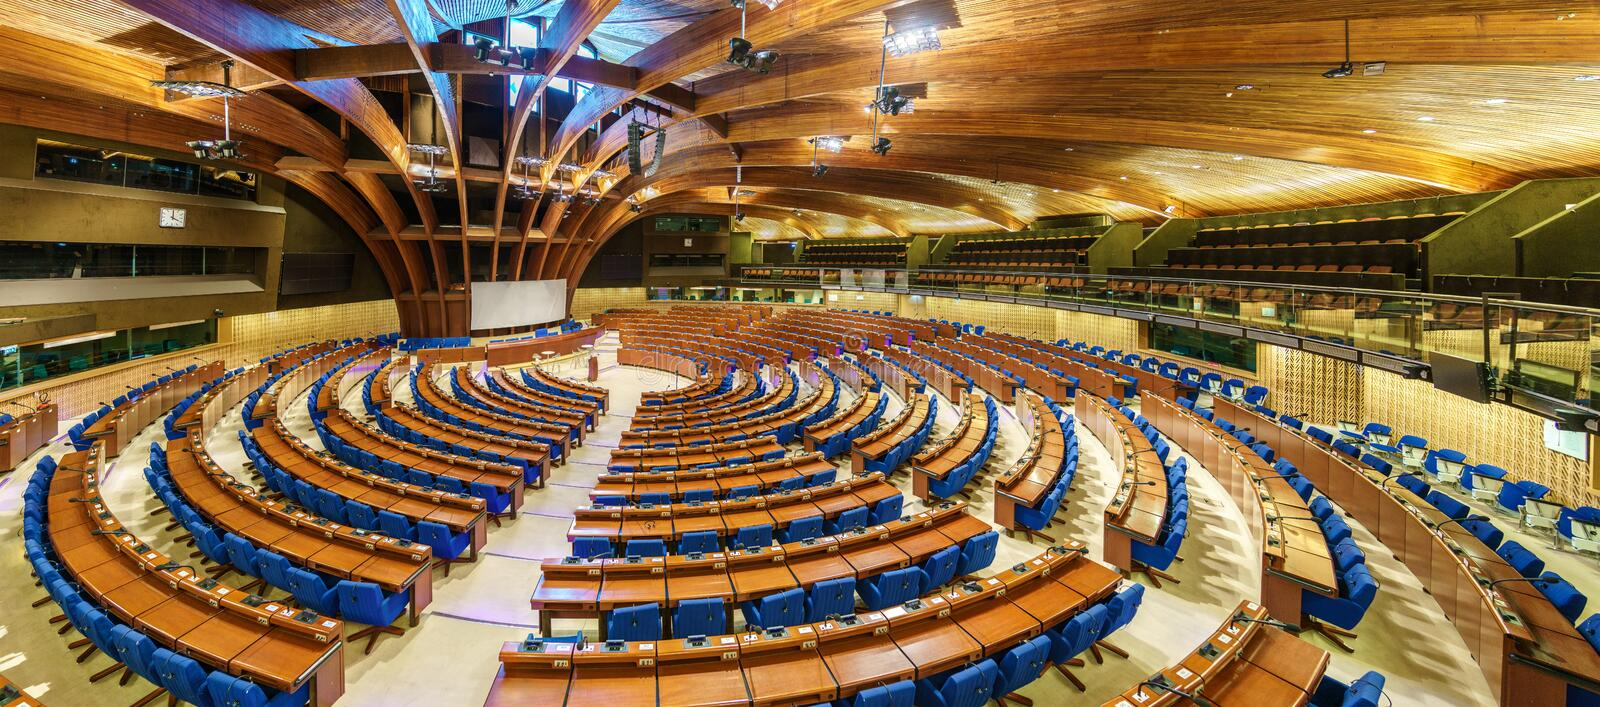 The Hemicycle of the Parliamentary Assembly of the Council of Europe, PACE. The CoE is an organisation whose aim is to stock photos